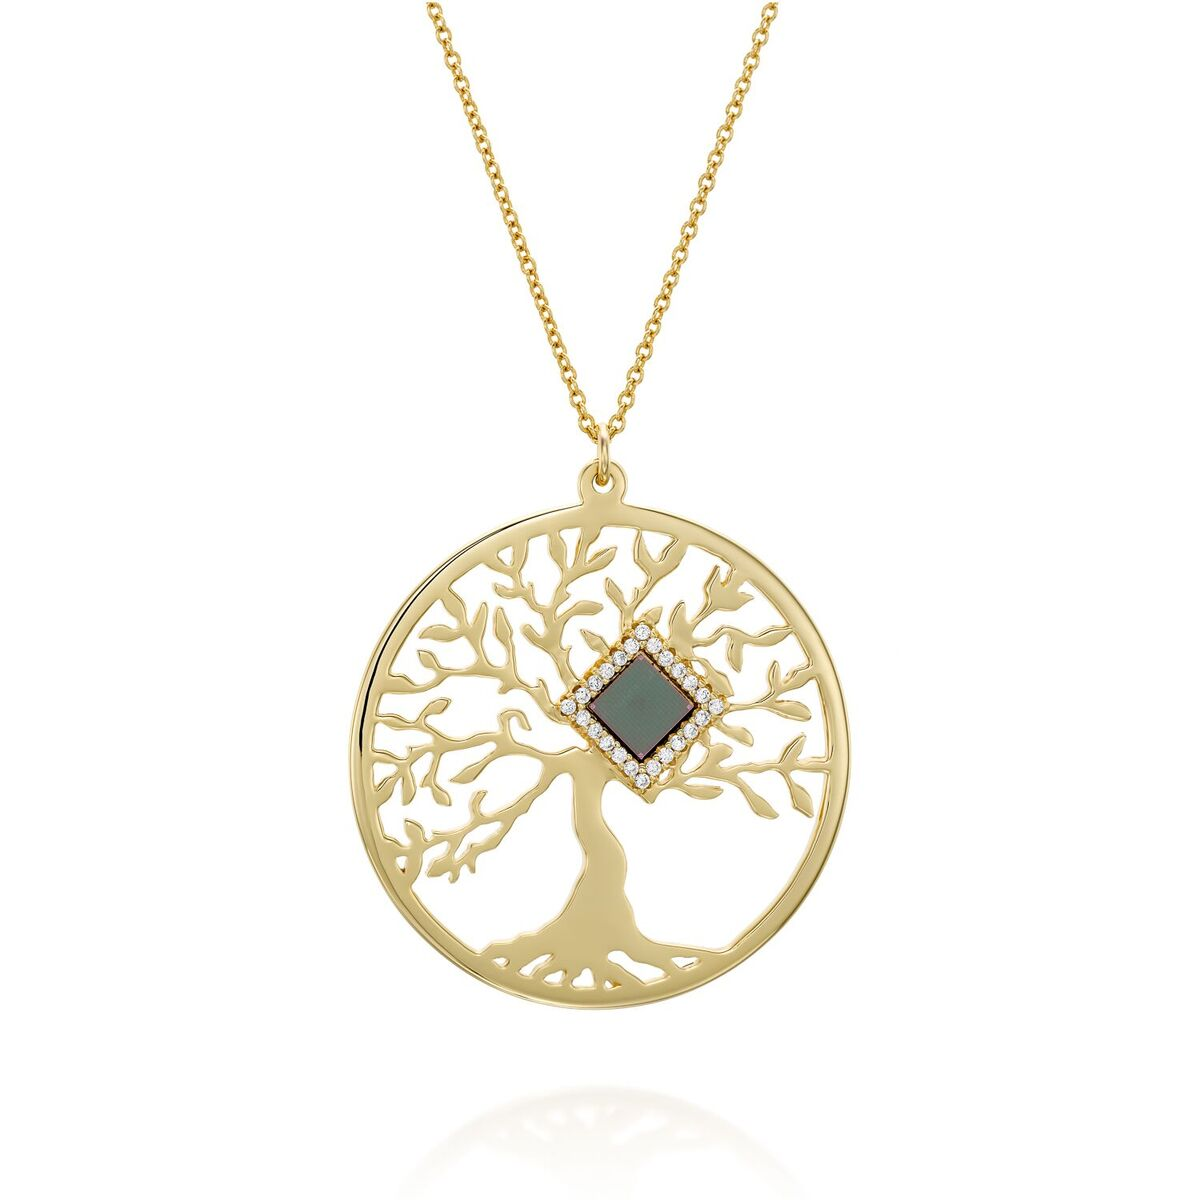 The Shiny Tree of Life Pendant